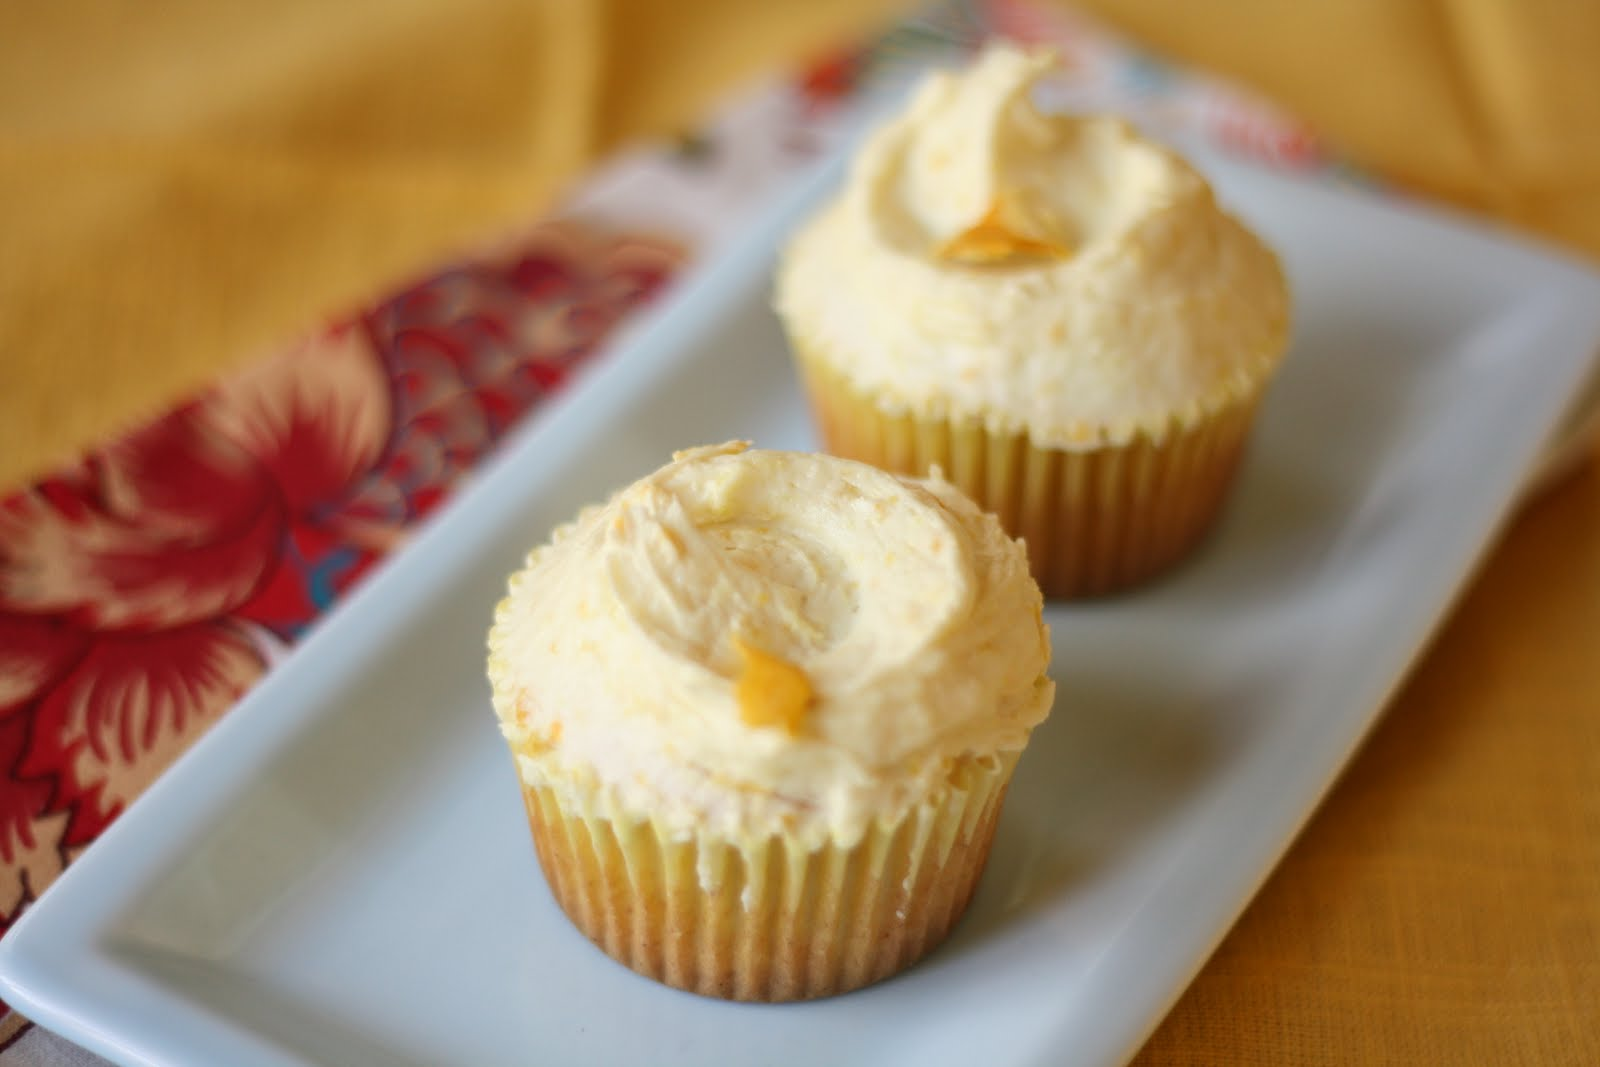 Hummingbird Bakery Lemon Cupcakes Recipe (Adapted for High ...